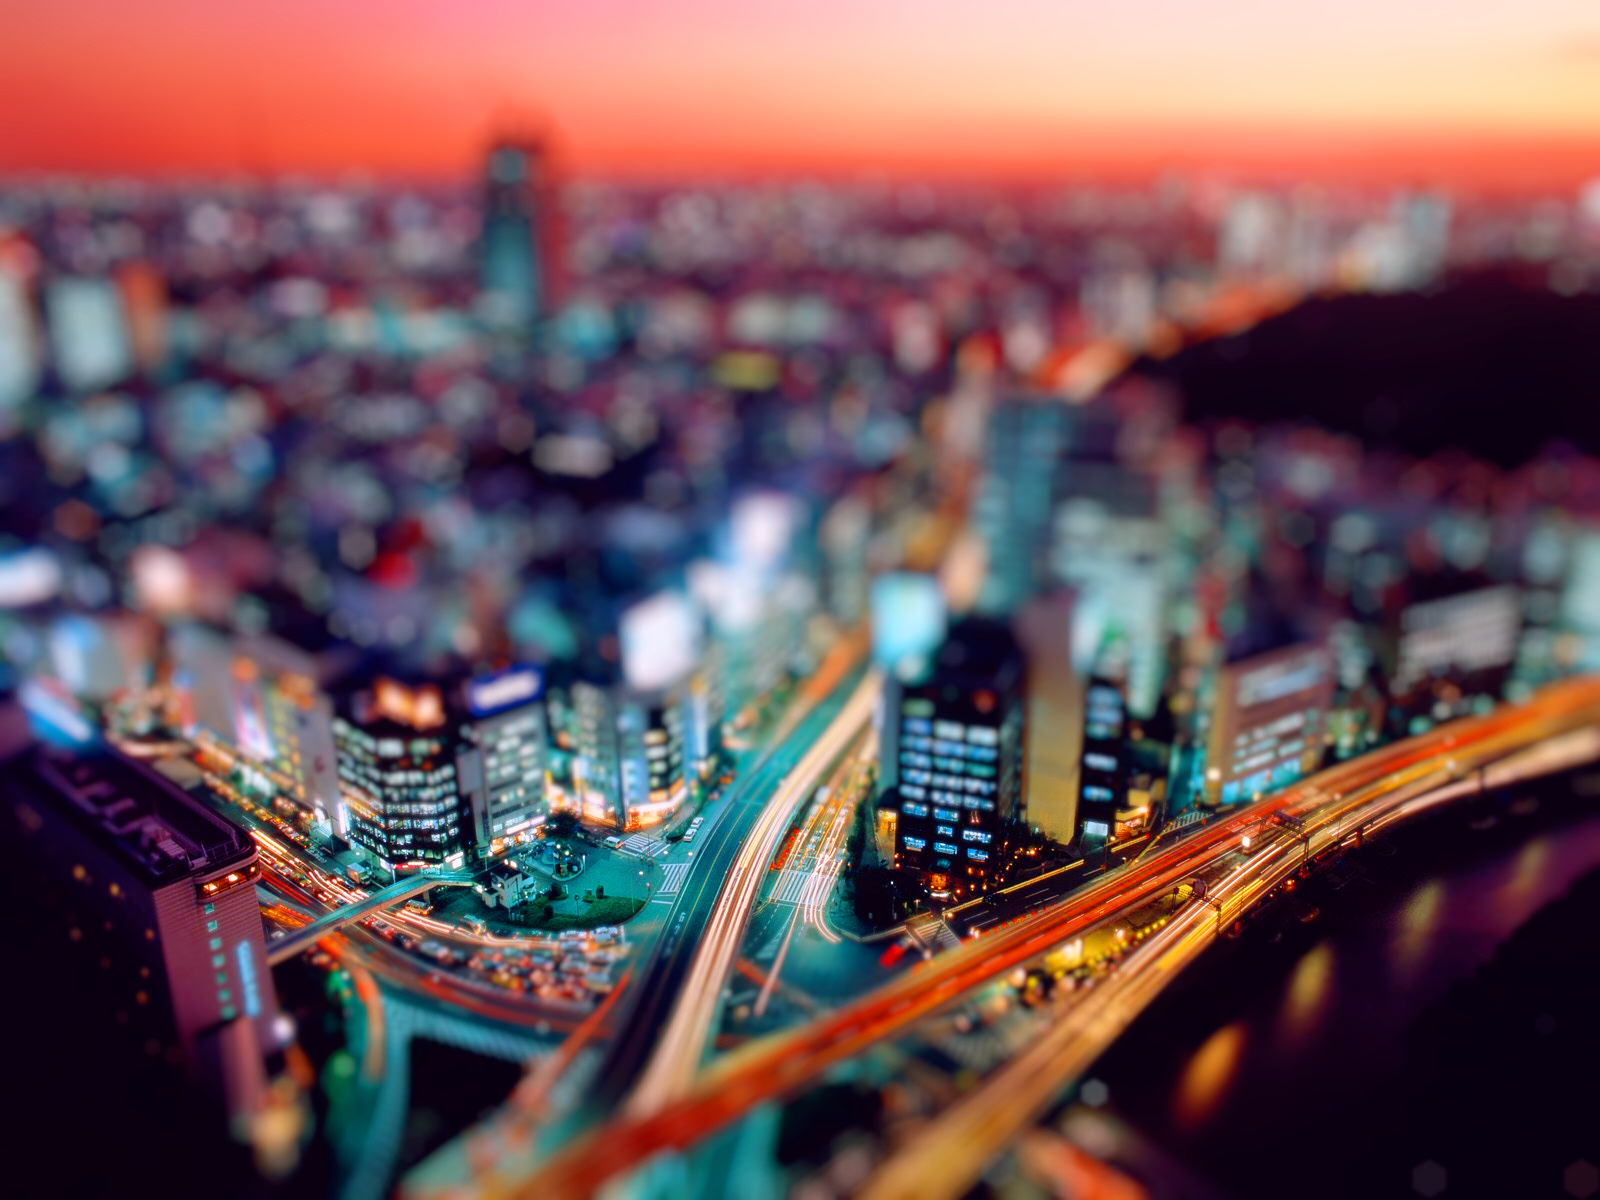 http://2.bp.blogspot.com/-xVay0D_-KVw/UE41UnpVoeI/AAAAAAAANpk/--PoNF6m_so/s1600/Tilt_Shift_Wallpaper_3_by_leiyagami.jpeg